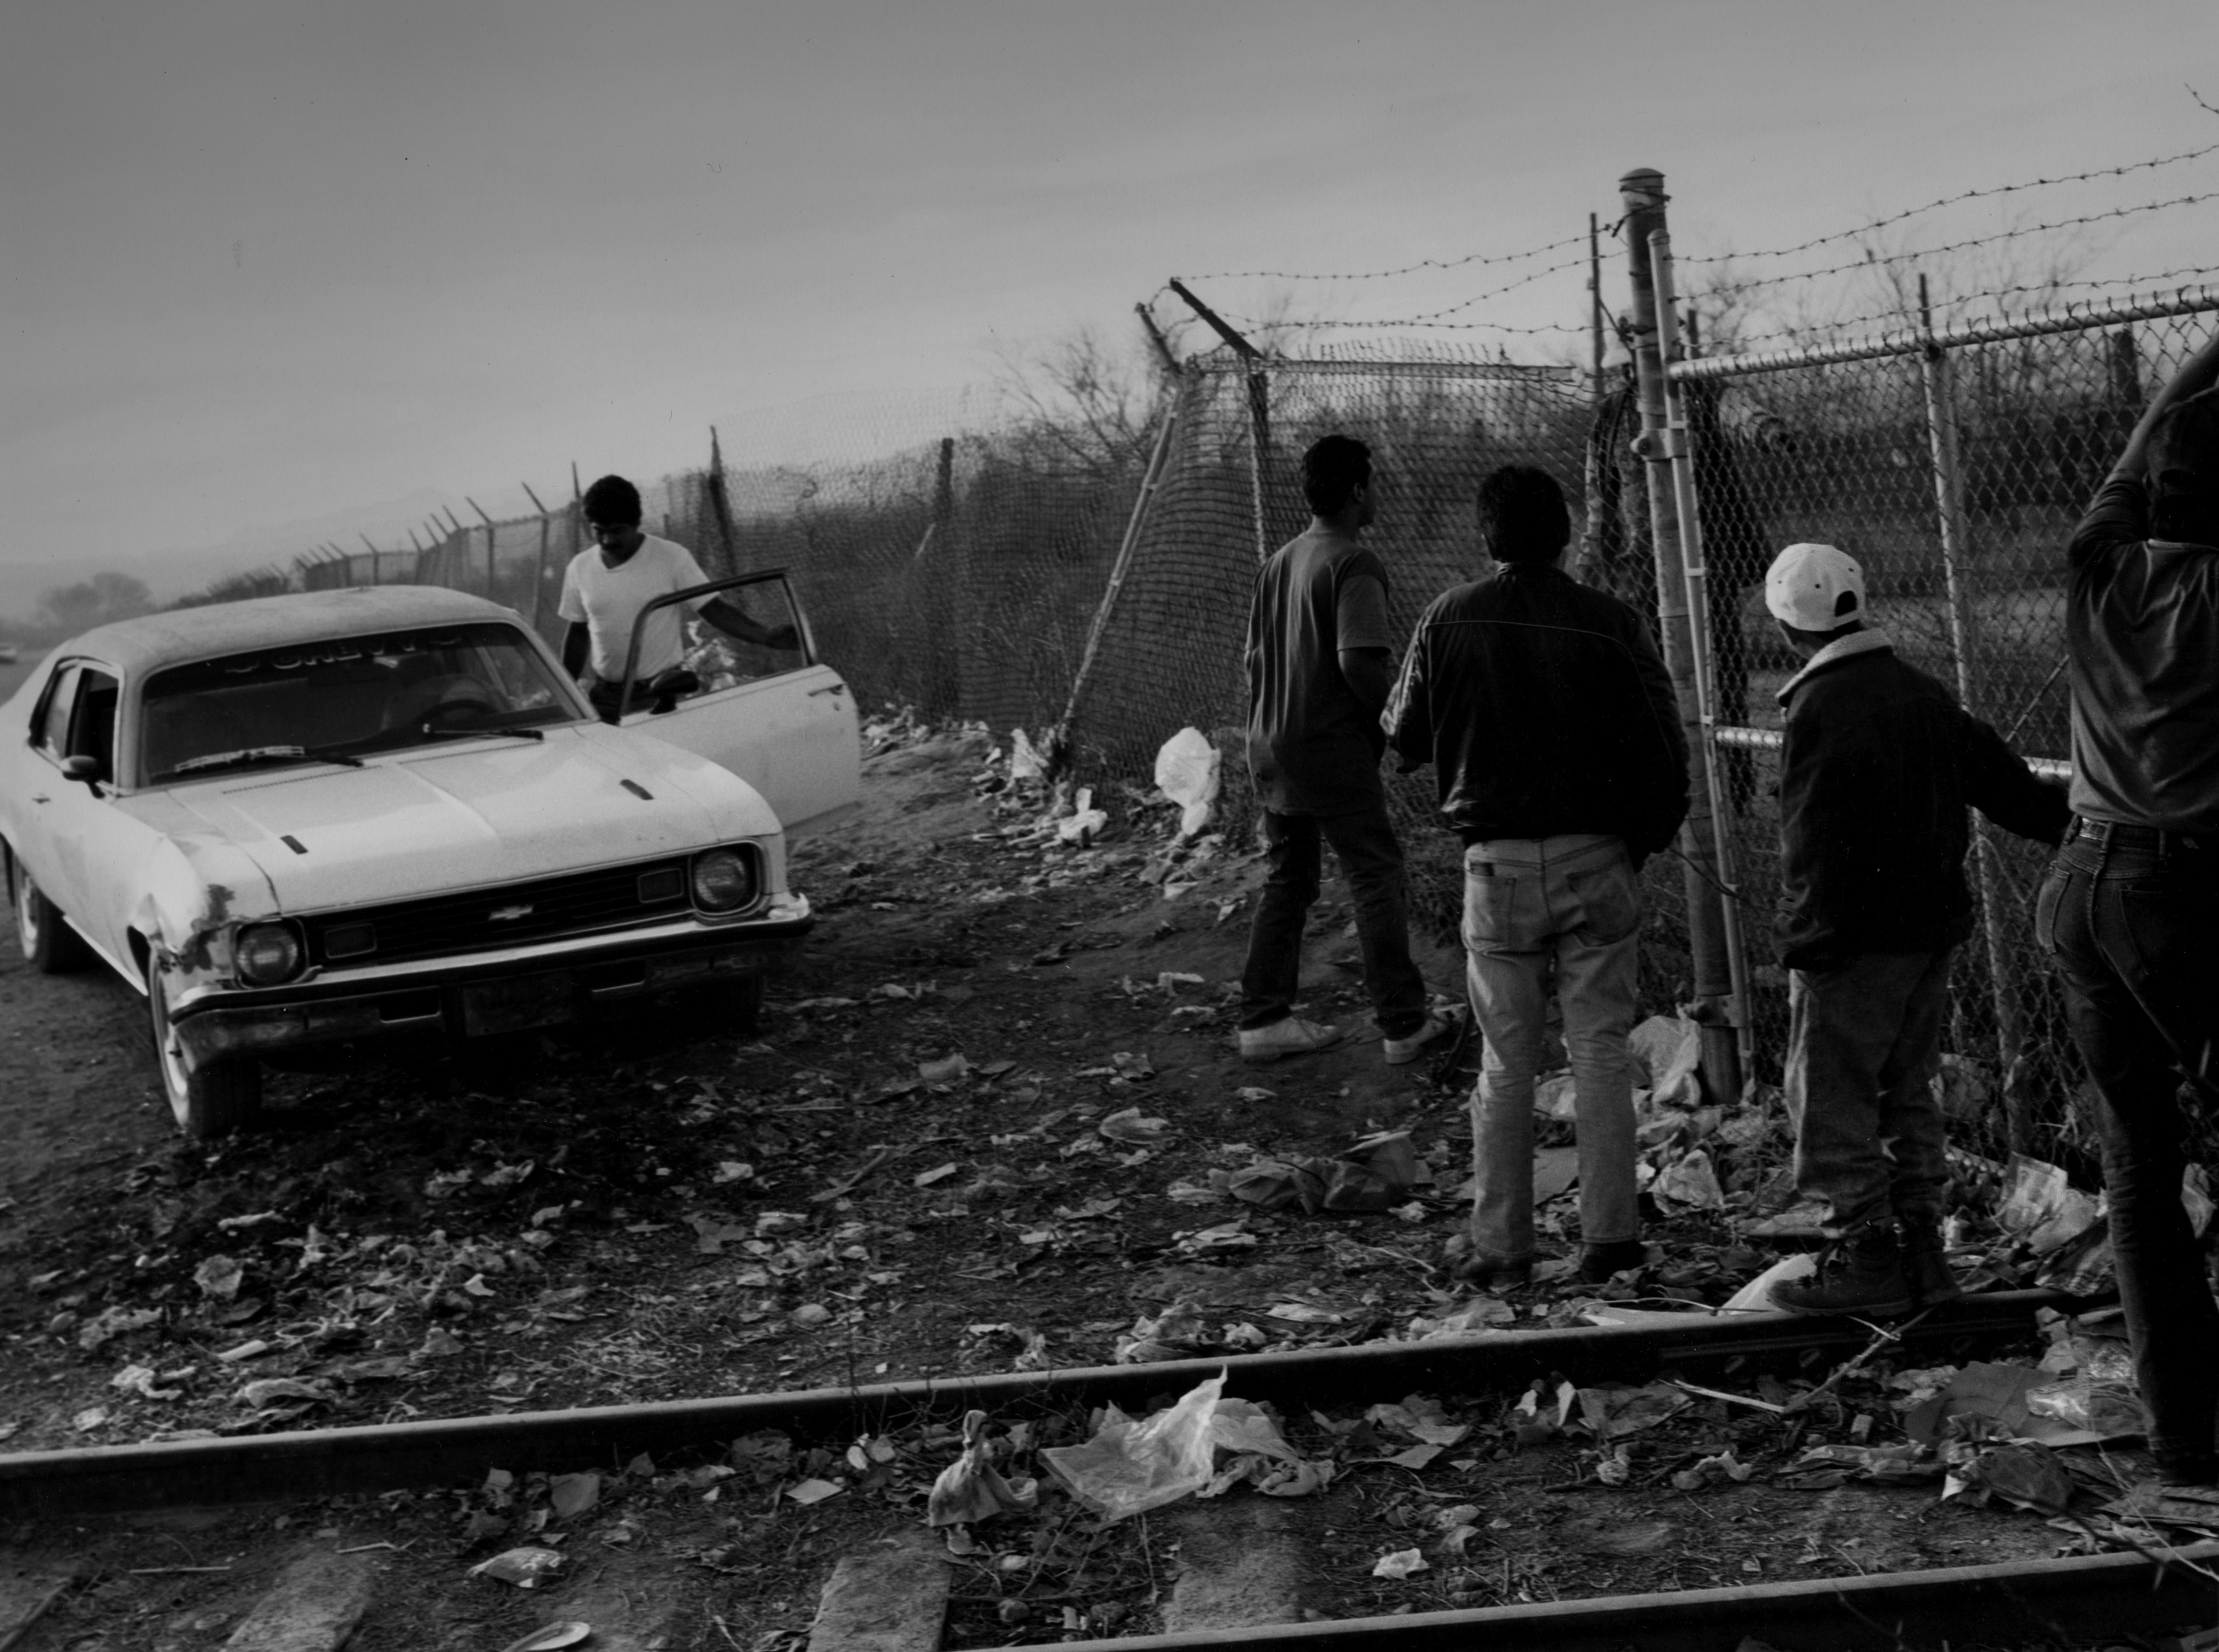 Men wait at a chain link fence while a man gets inside a car